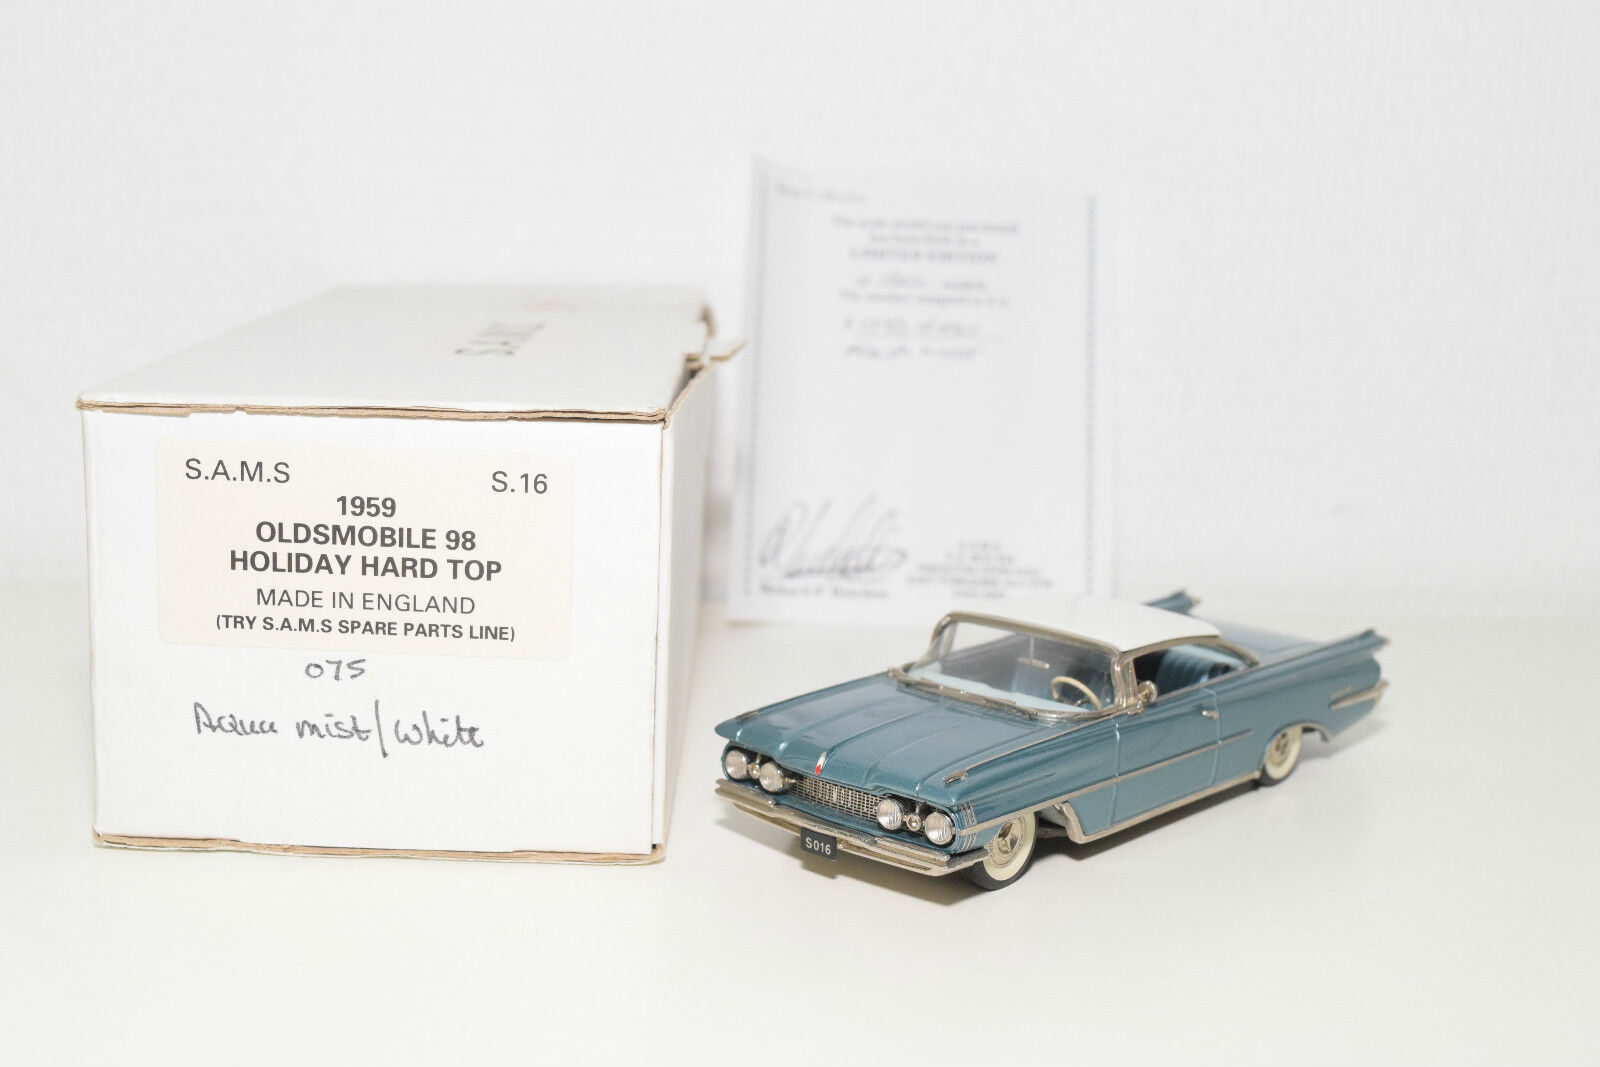 . S.A.M.S SAMS S16 OLDSMOBILE 98 HOLIDAY HARD TOP MET. Blau MINT BOXED RARE